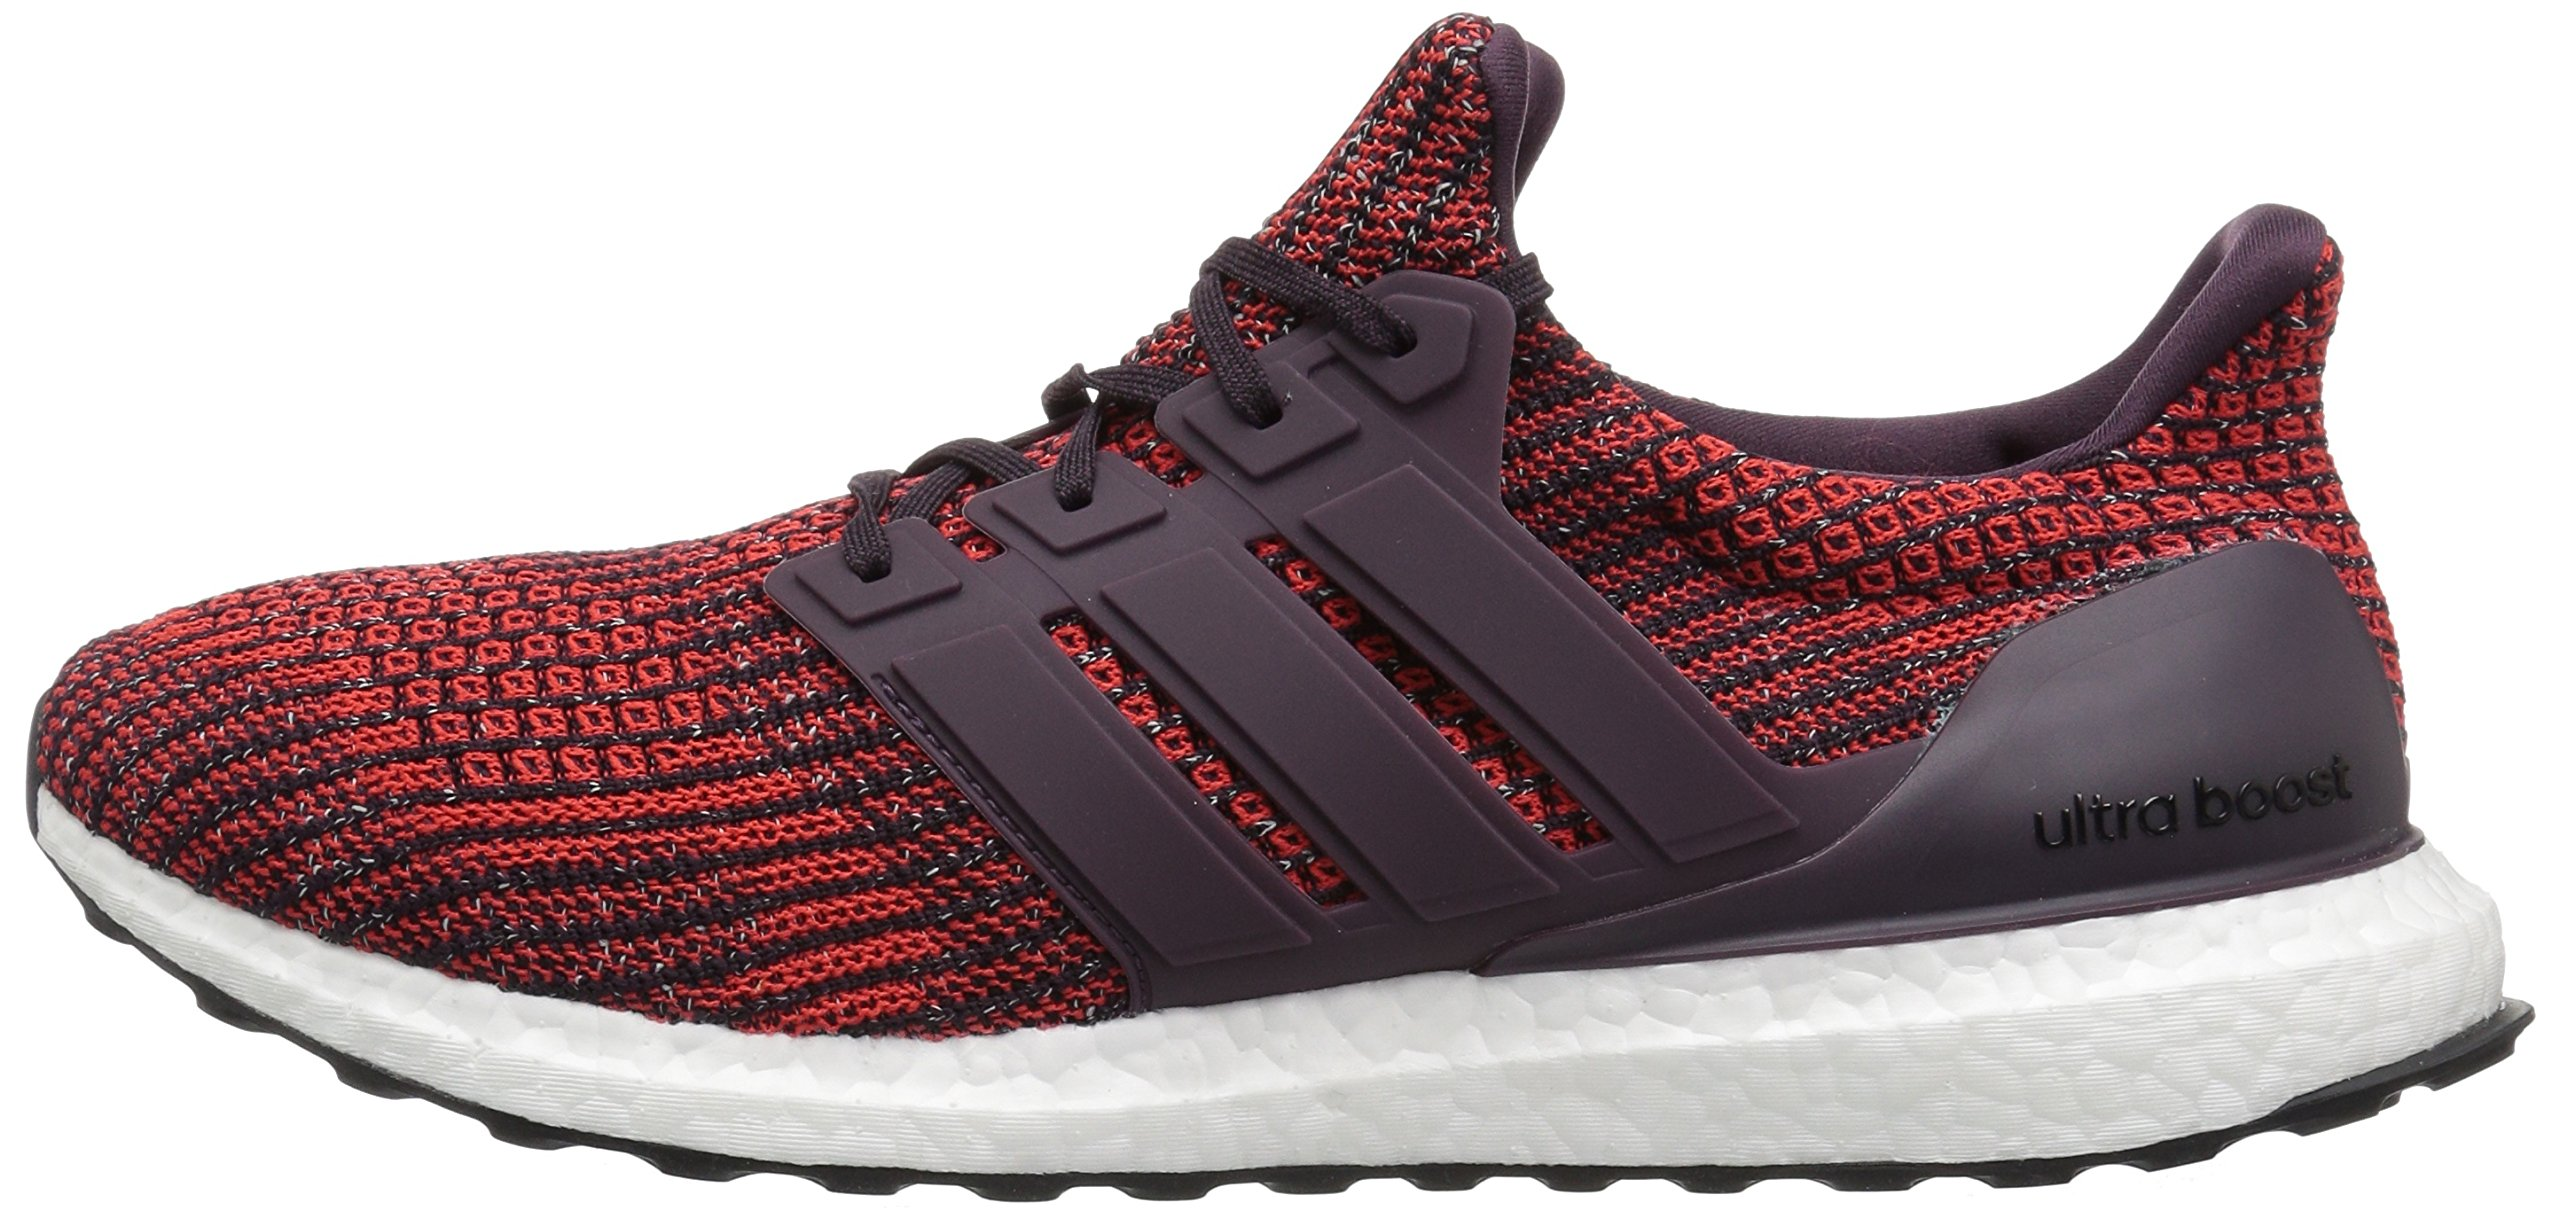 adidas Men's Ultraboost Road Running Shoe, Noble Red/Noble Red/Core Black, 5 M US by adidas (Image #5)